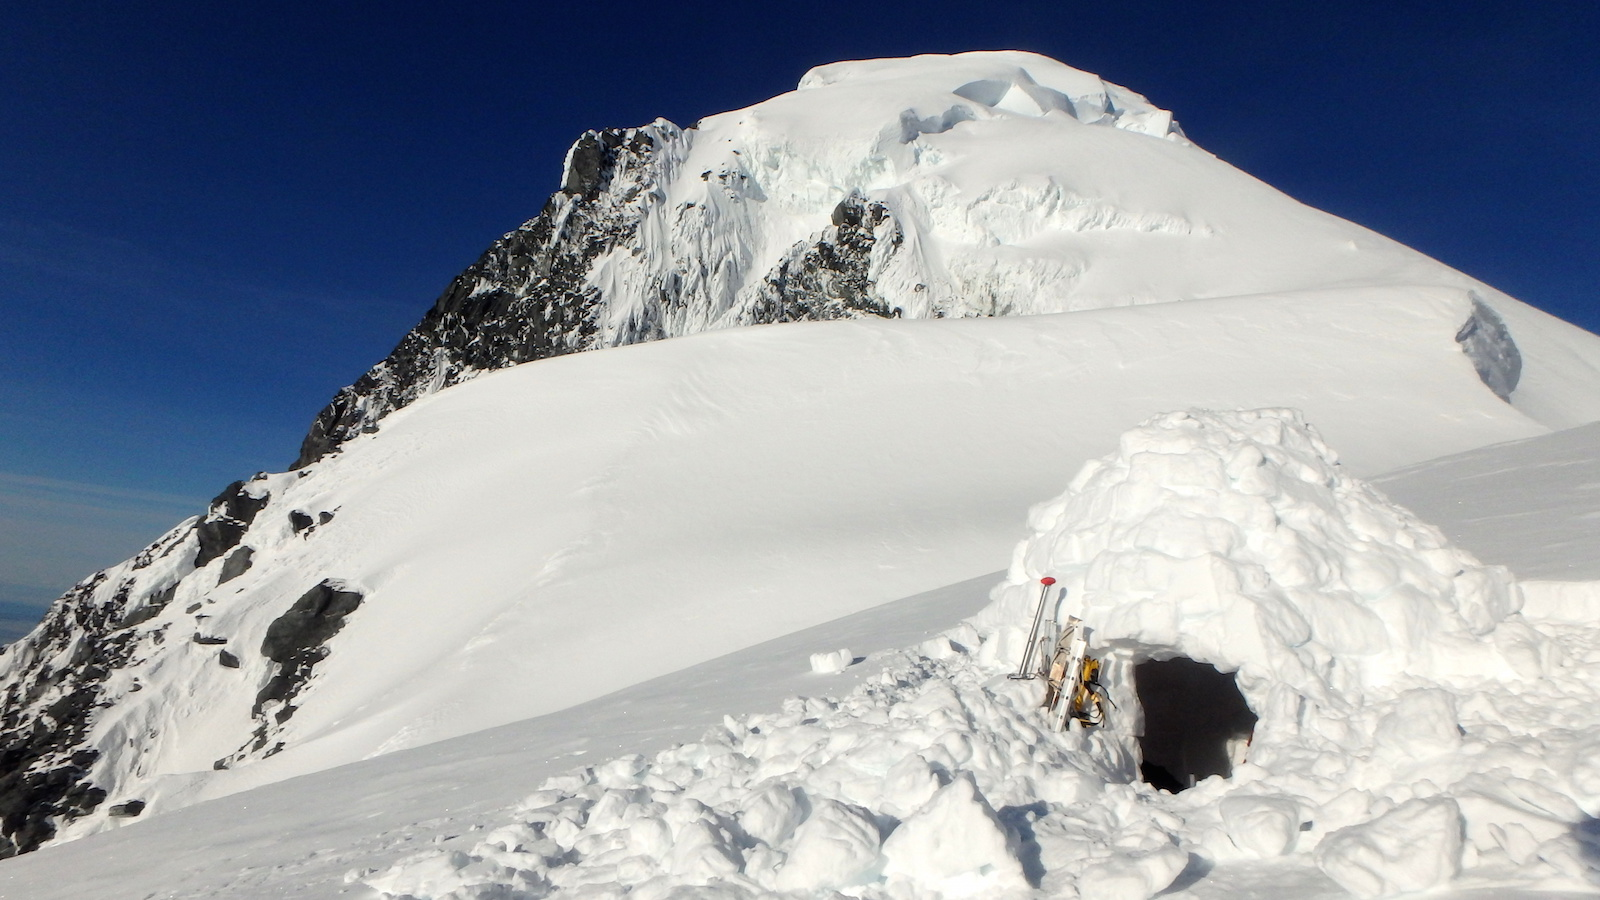 The igloo bivouac on the east shoulder with the summit of Malaspina behind. [Photos] Natalia Martinez, Camilo Rada